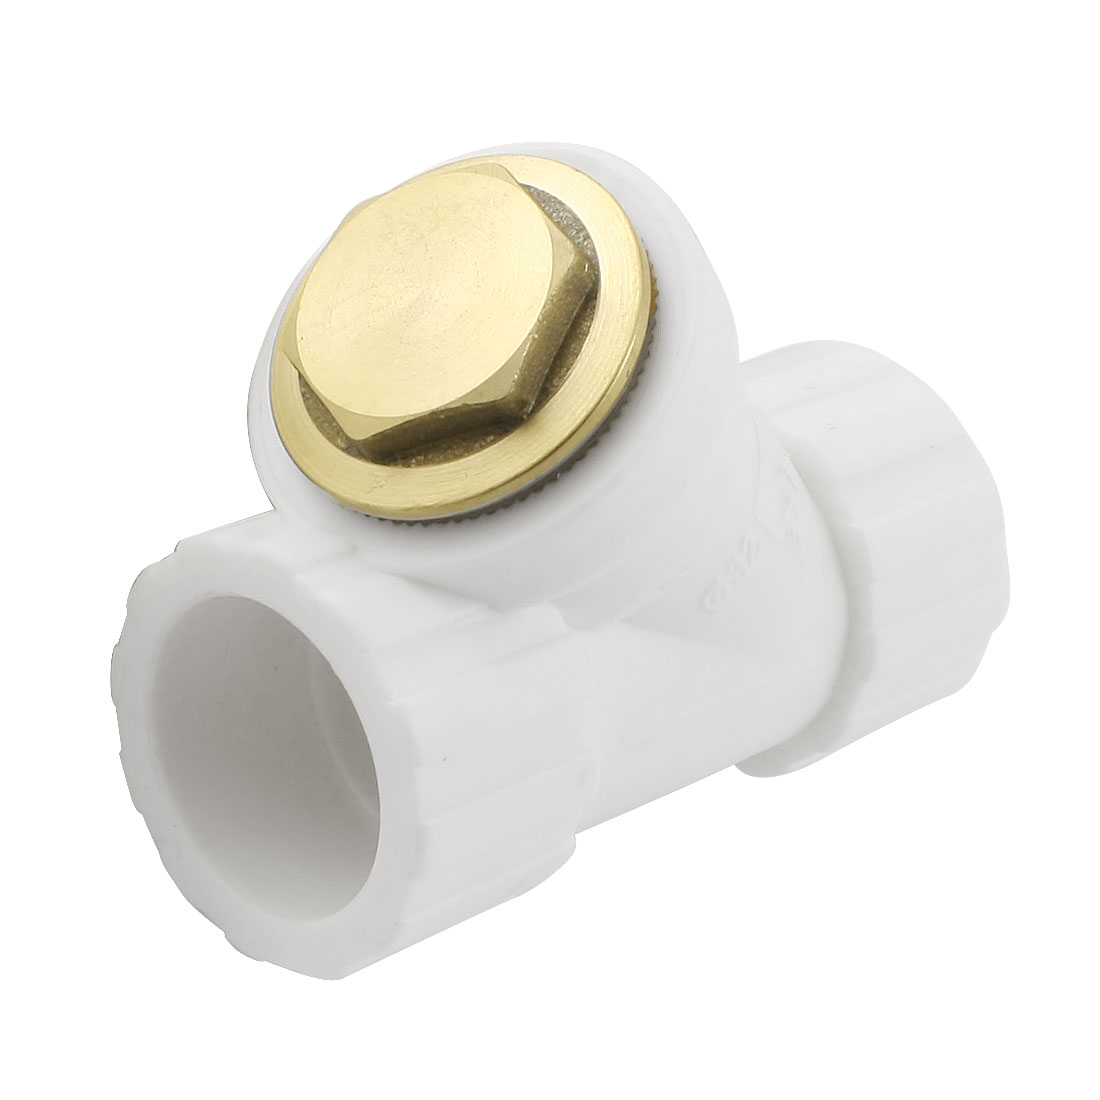 32mm Inner Dia PPR 2-Way Water Pipe Hose Coupler Connector w Filter